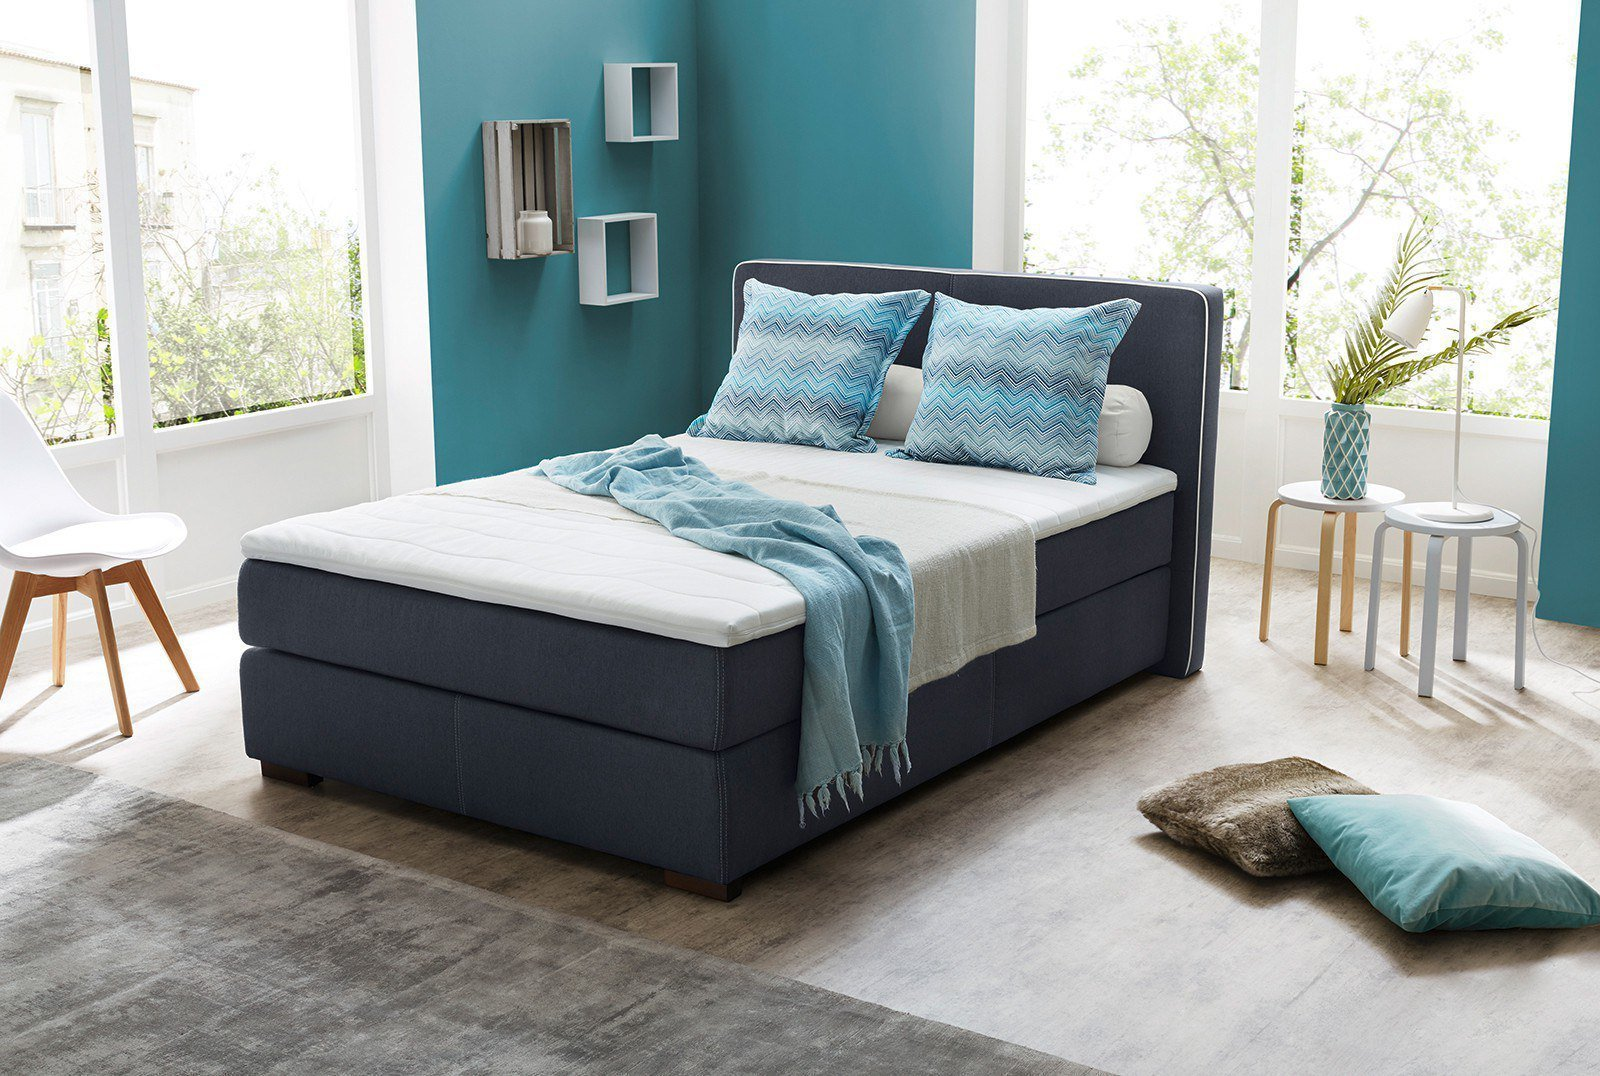 jockenh fer boxspringbett isabel in blau mit dunklen holzf en m bel letz ihr online shop. Black Bedroom Furniture Sets. Home Design Ideas